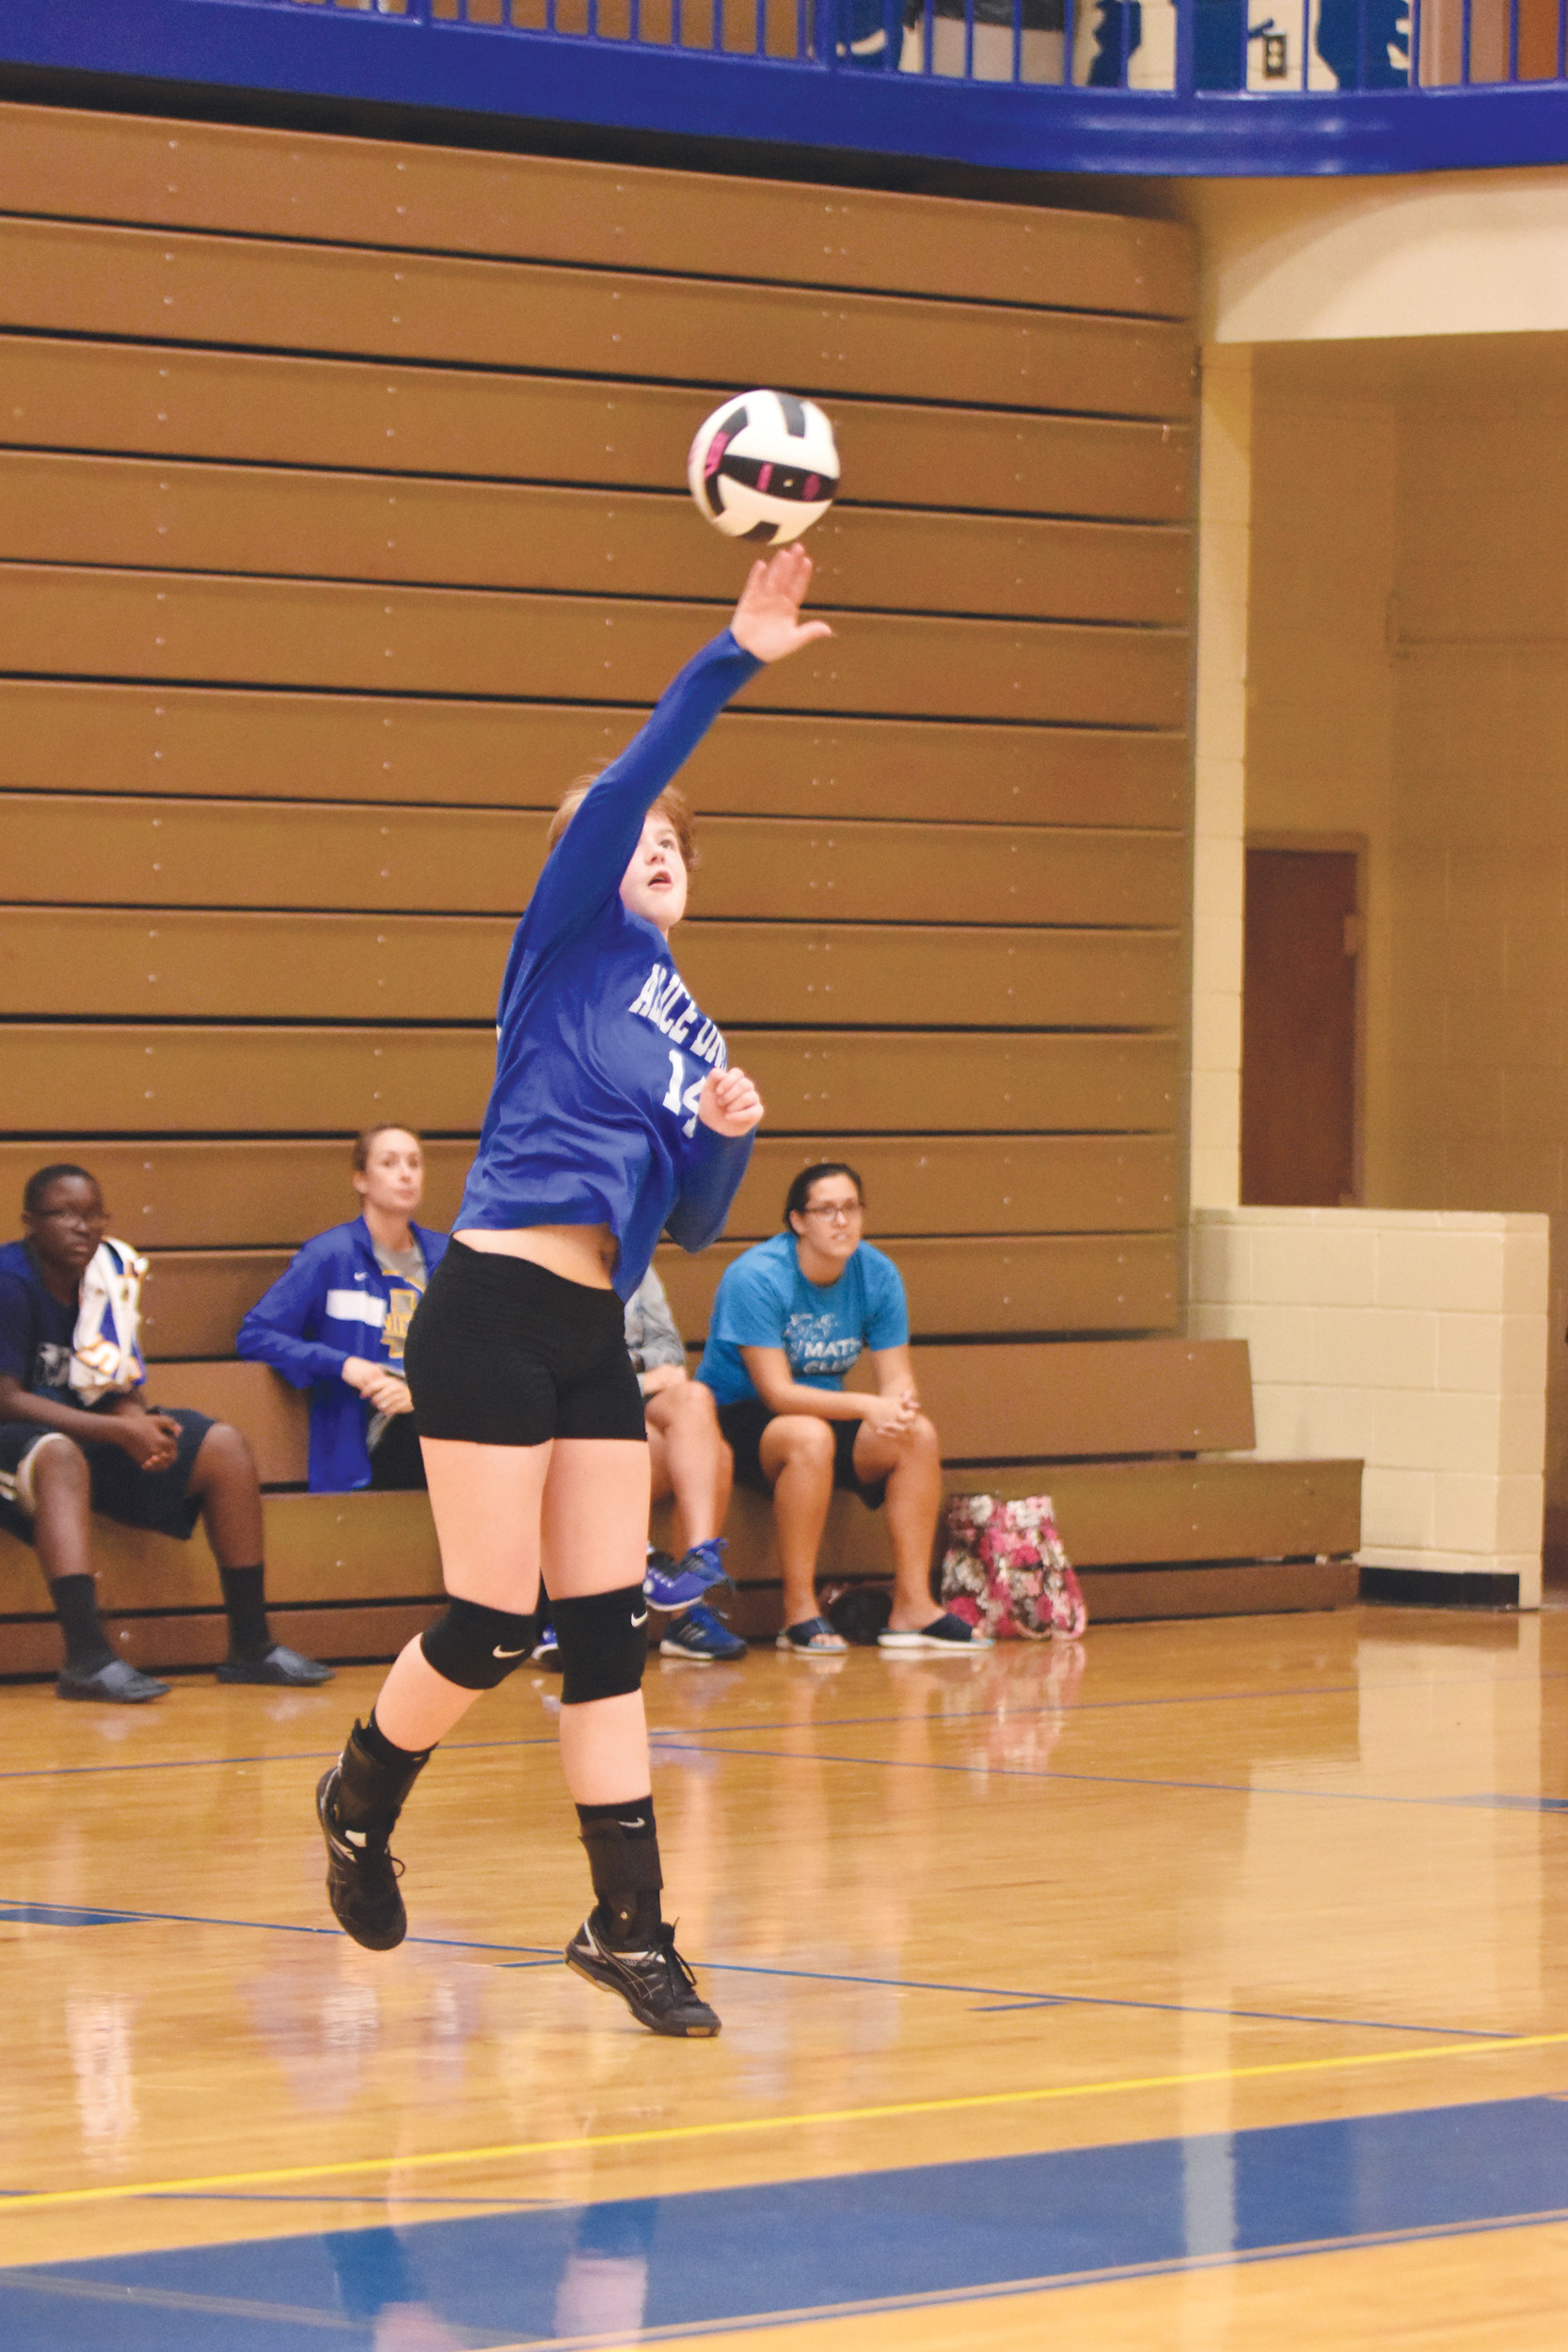 Alice Drive Middle School's Molly McMahon serves during the Hawks' victory over Hillcrest Middle School on Wednesday in the Sumter Middle Schools volleyball tournament at Sumter High School.